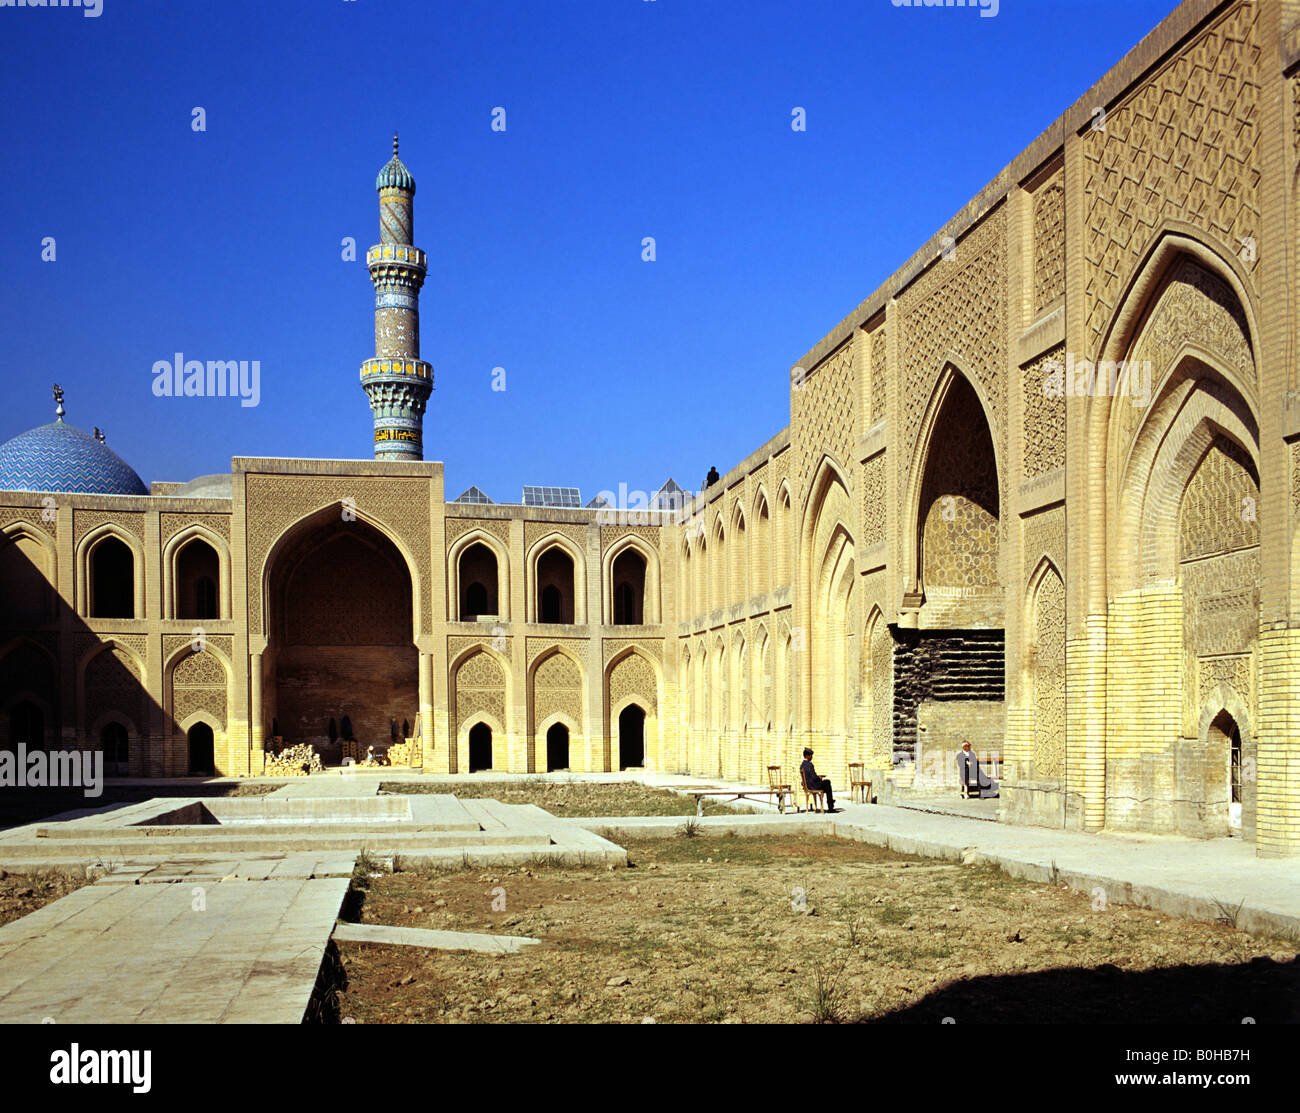 Quranic school, madrassa, cadet school in Baghdad, Iraq, Middle East - Stock Image